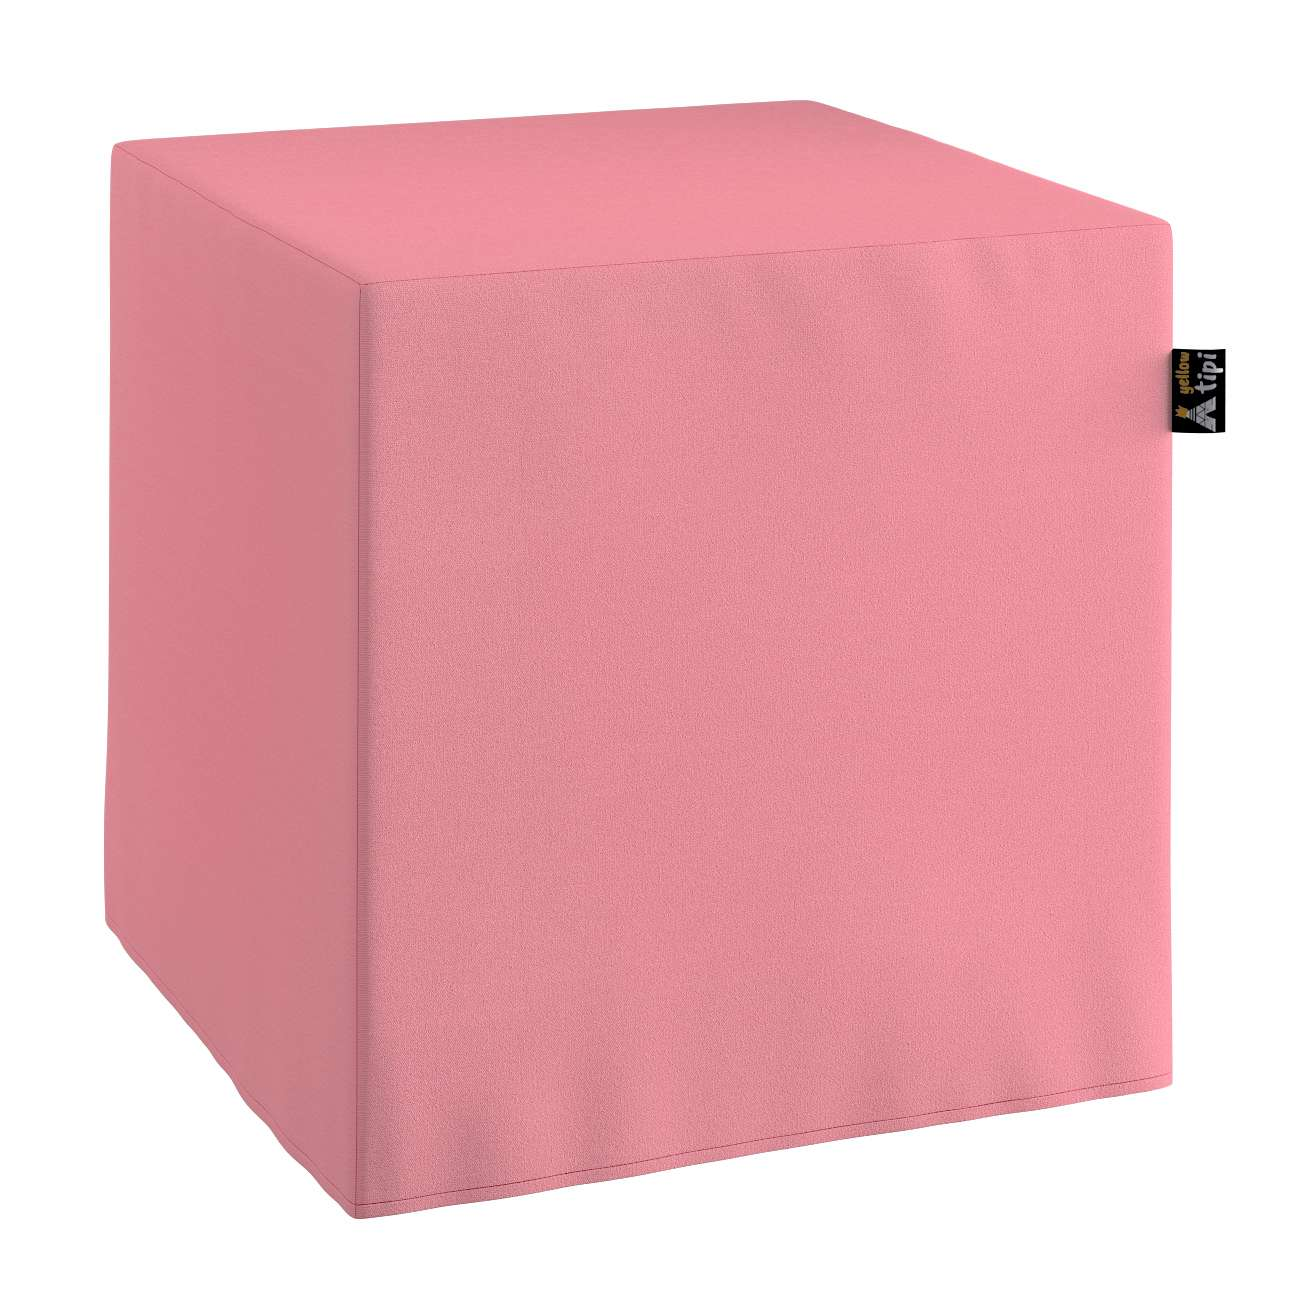 Nano cube pouf in collection Happiness, fabric: 133-62